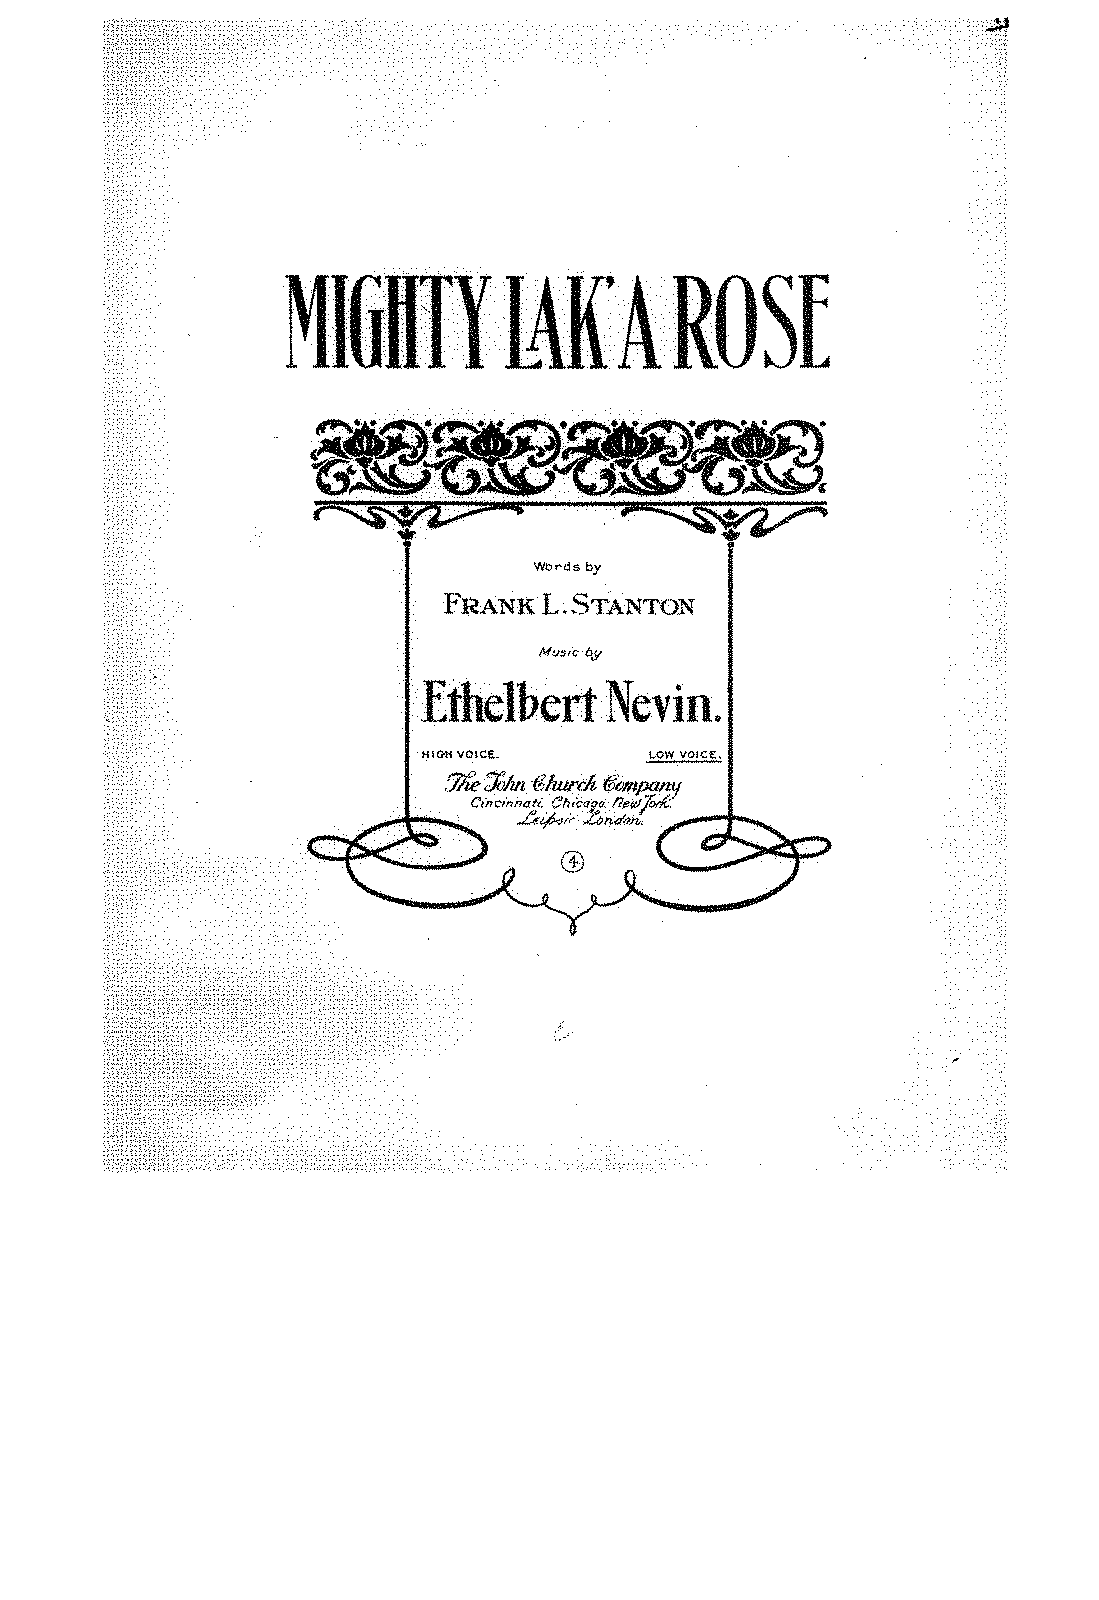 SIBLEY1802.10355.040b-39087012013431mighty lak a rose color cover.pdf